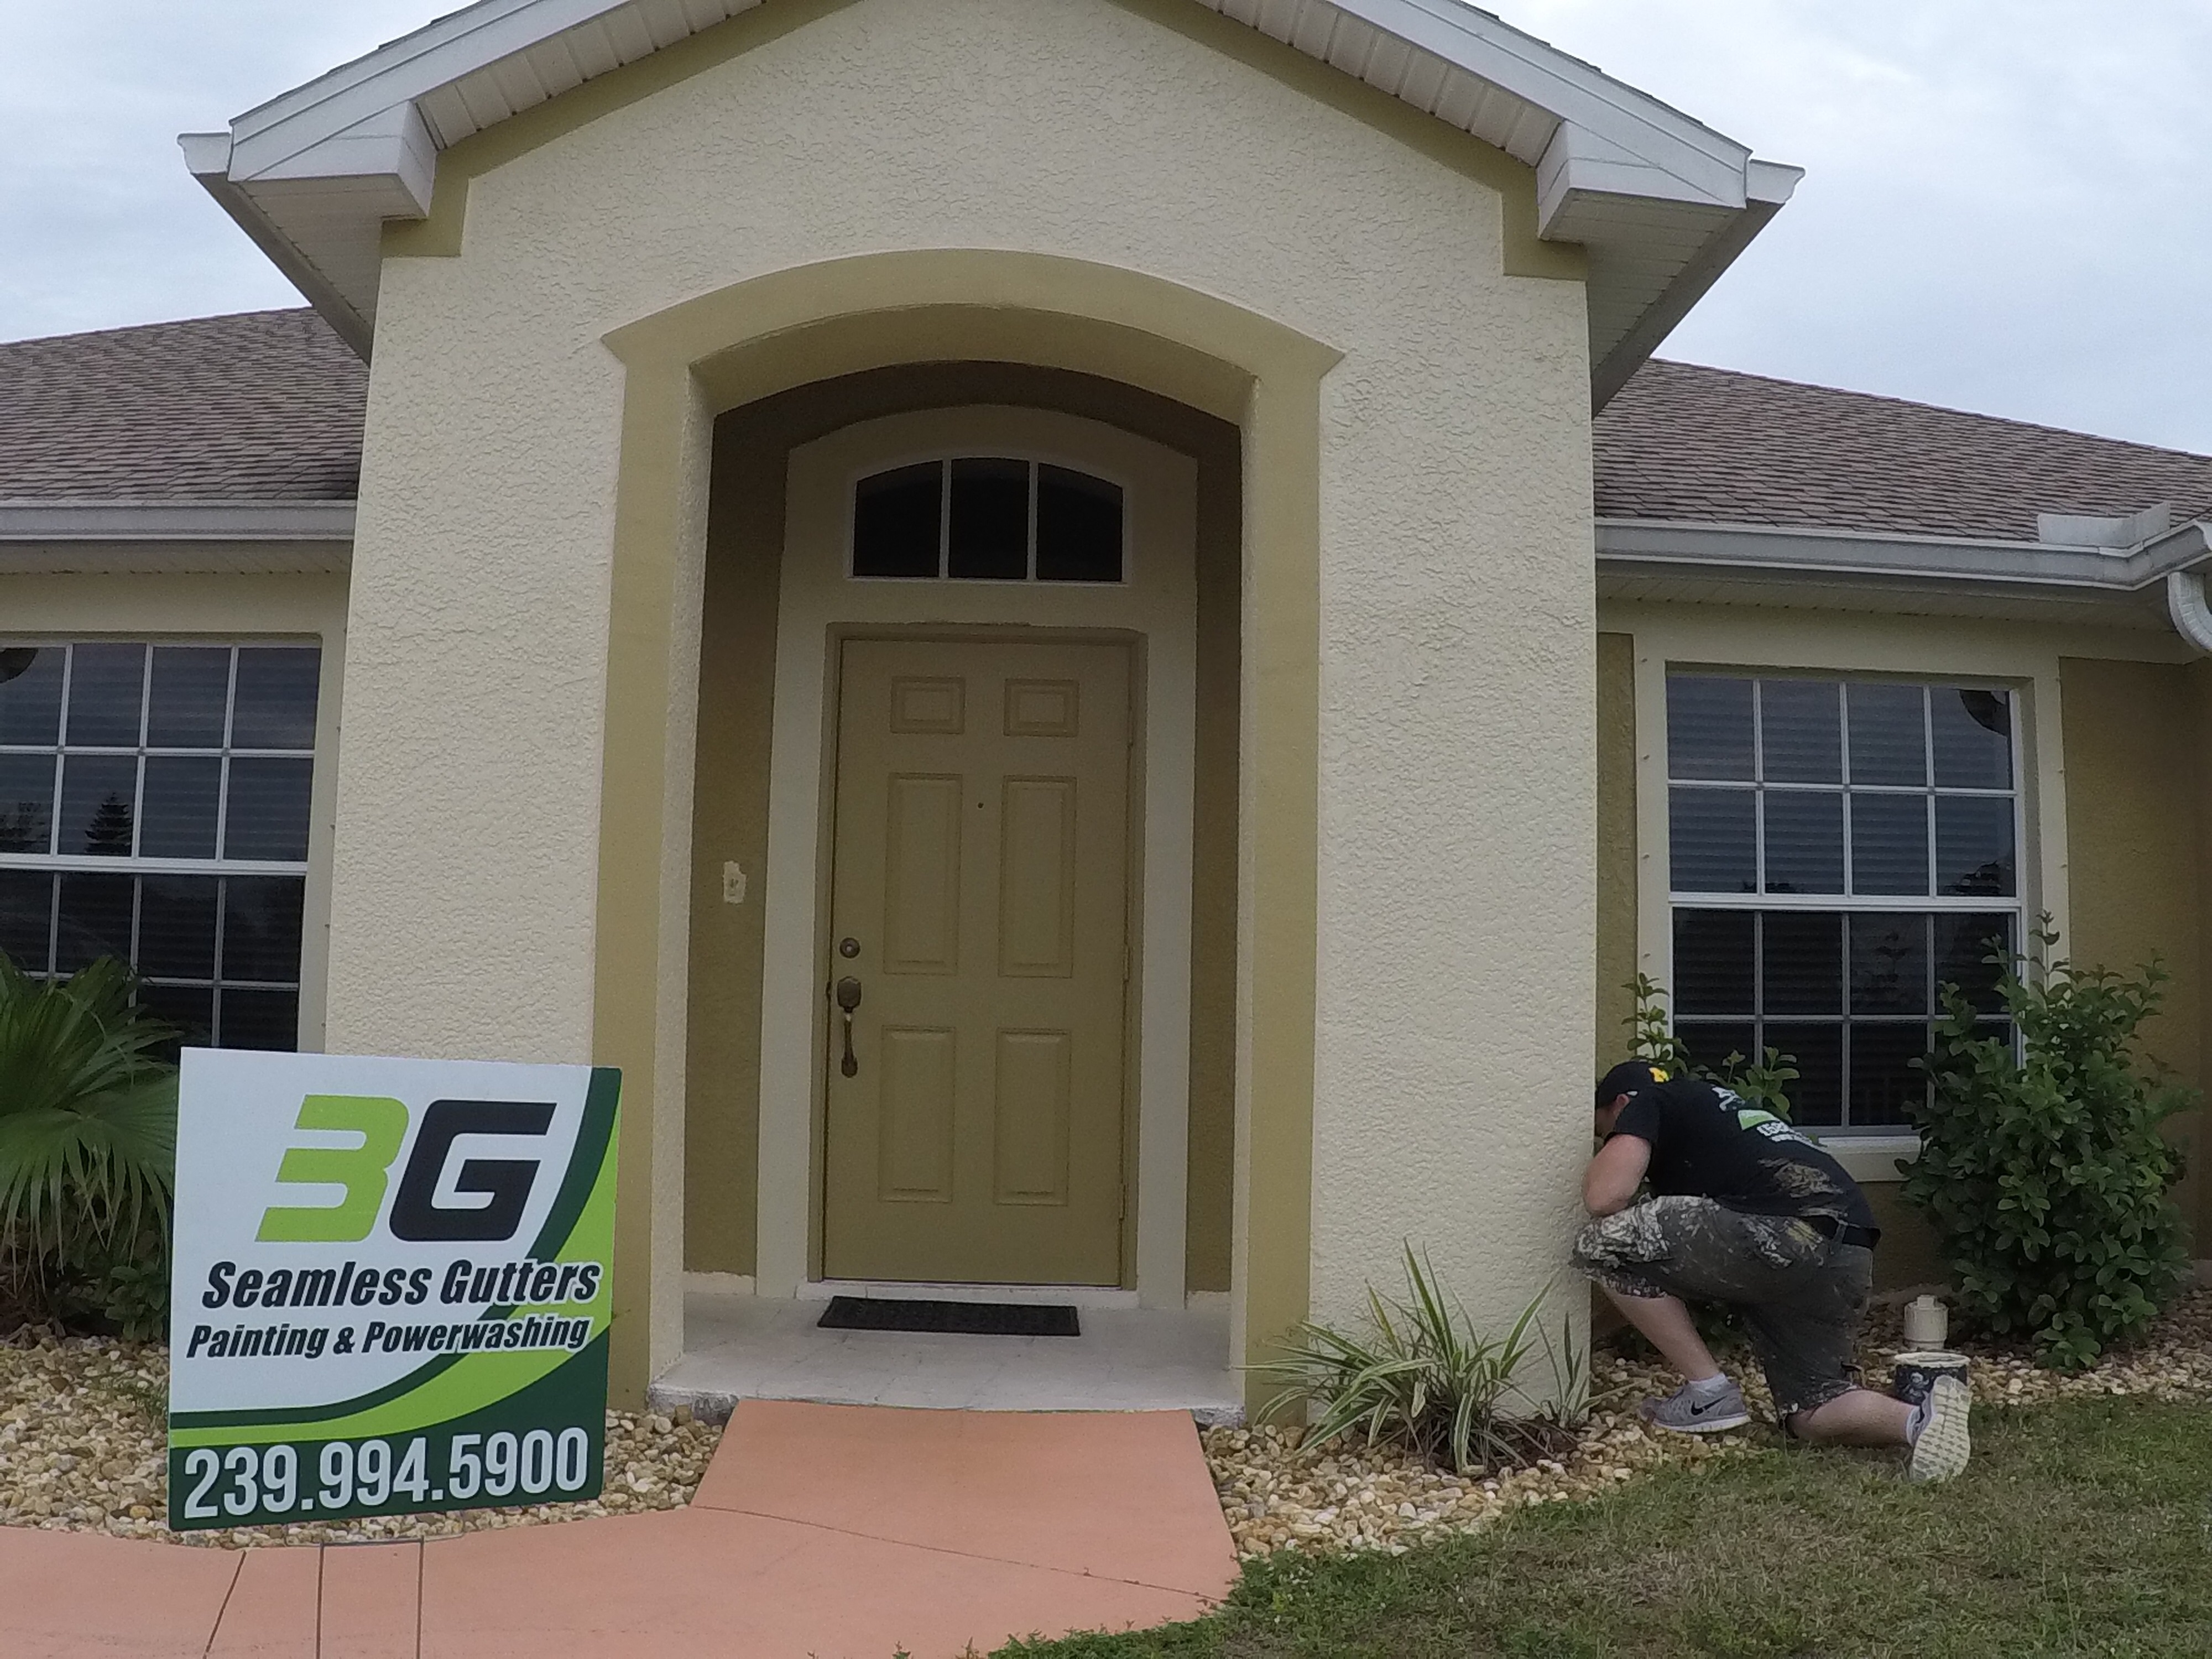 Unnamed File 3gp2 3g Home Exteriors Florida